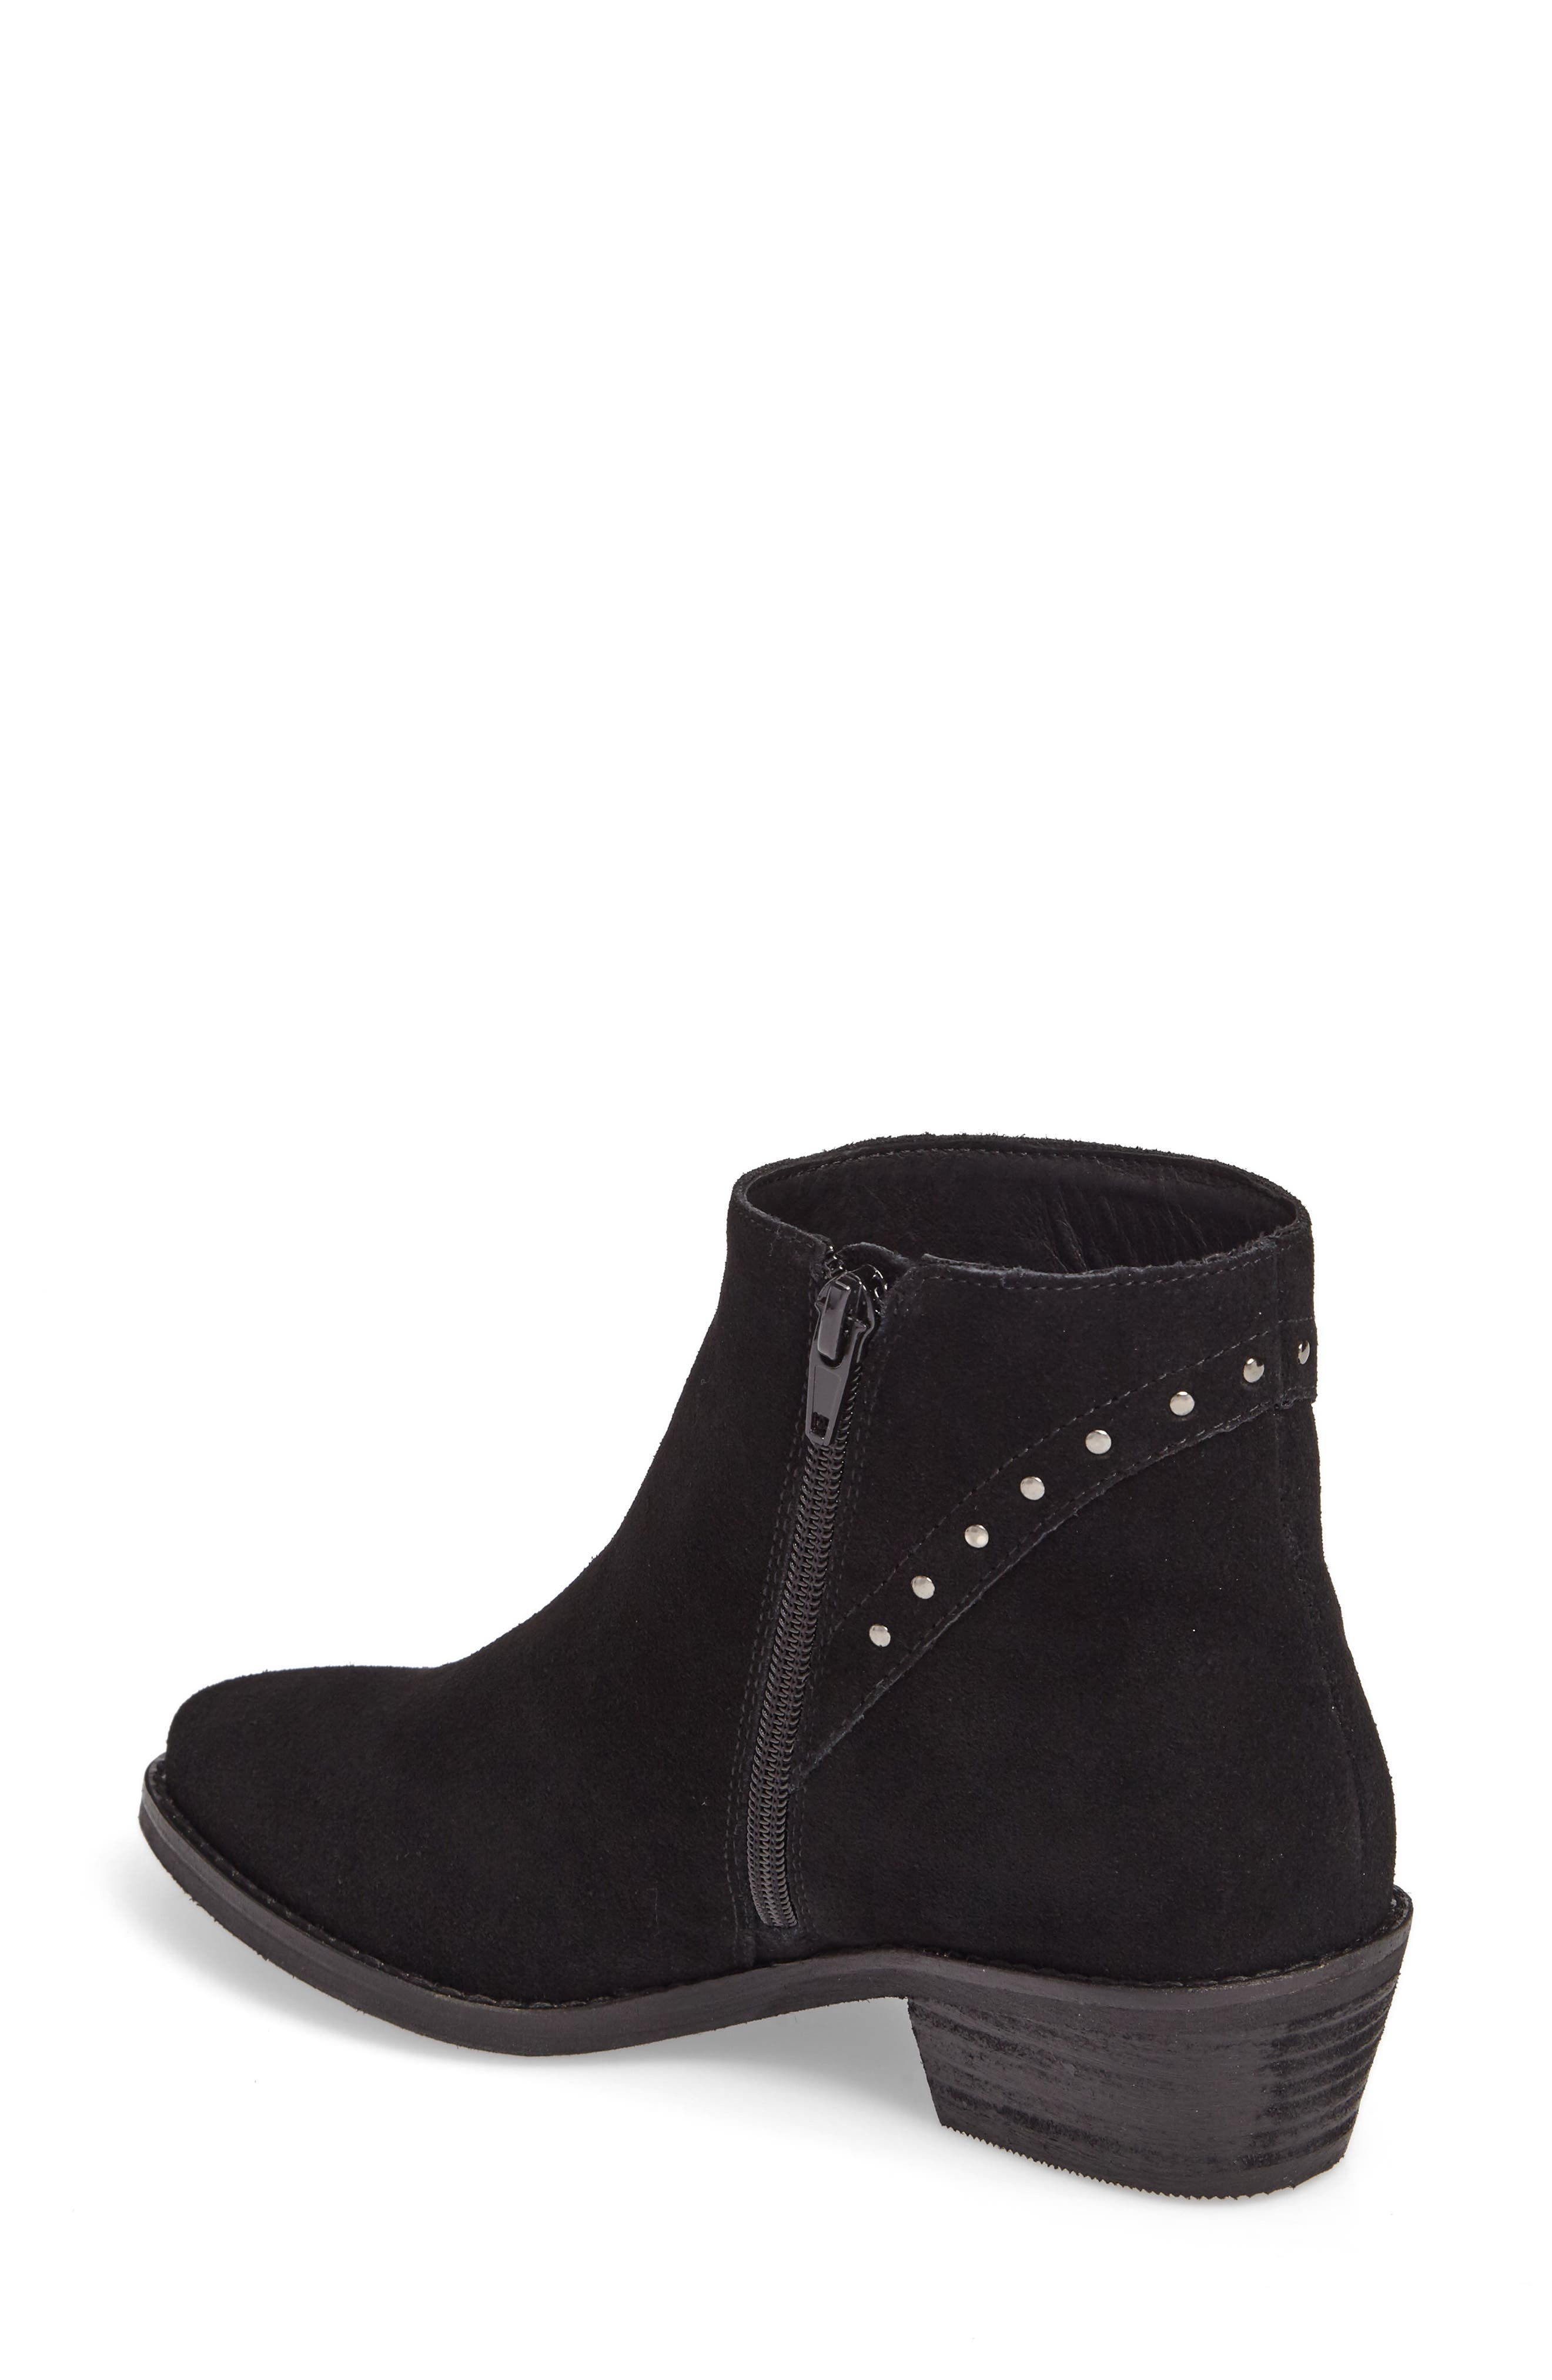 Irven Stud Bootie,                             Alternate thumbnail 2, color,                             Black Suede